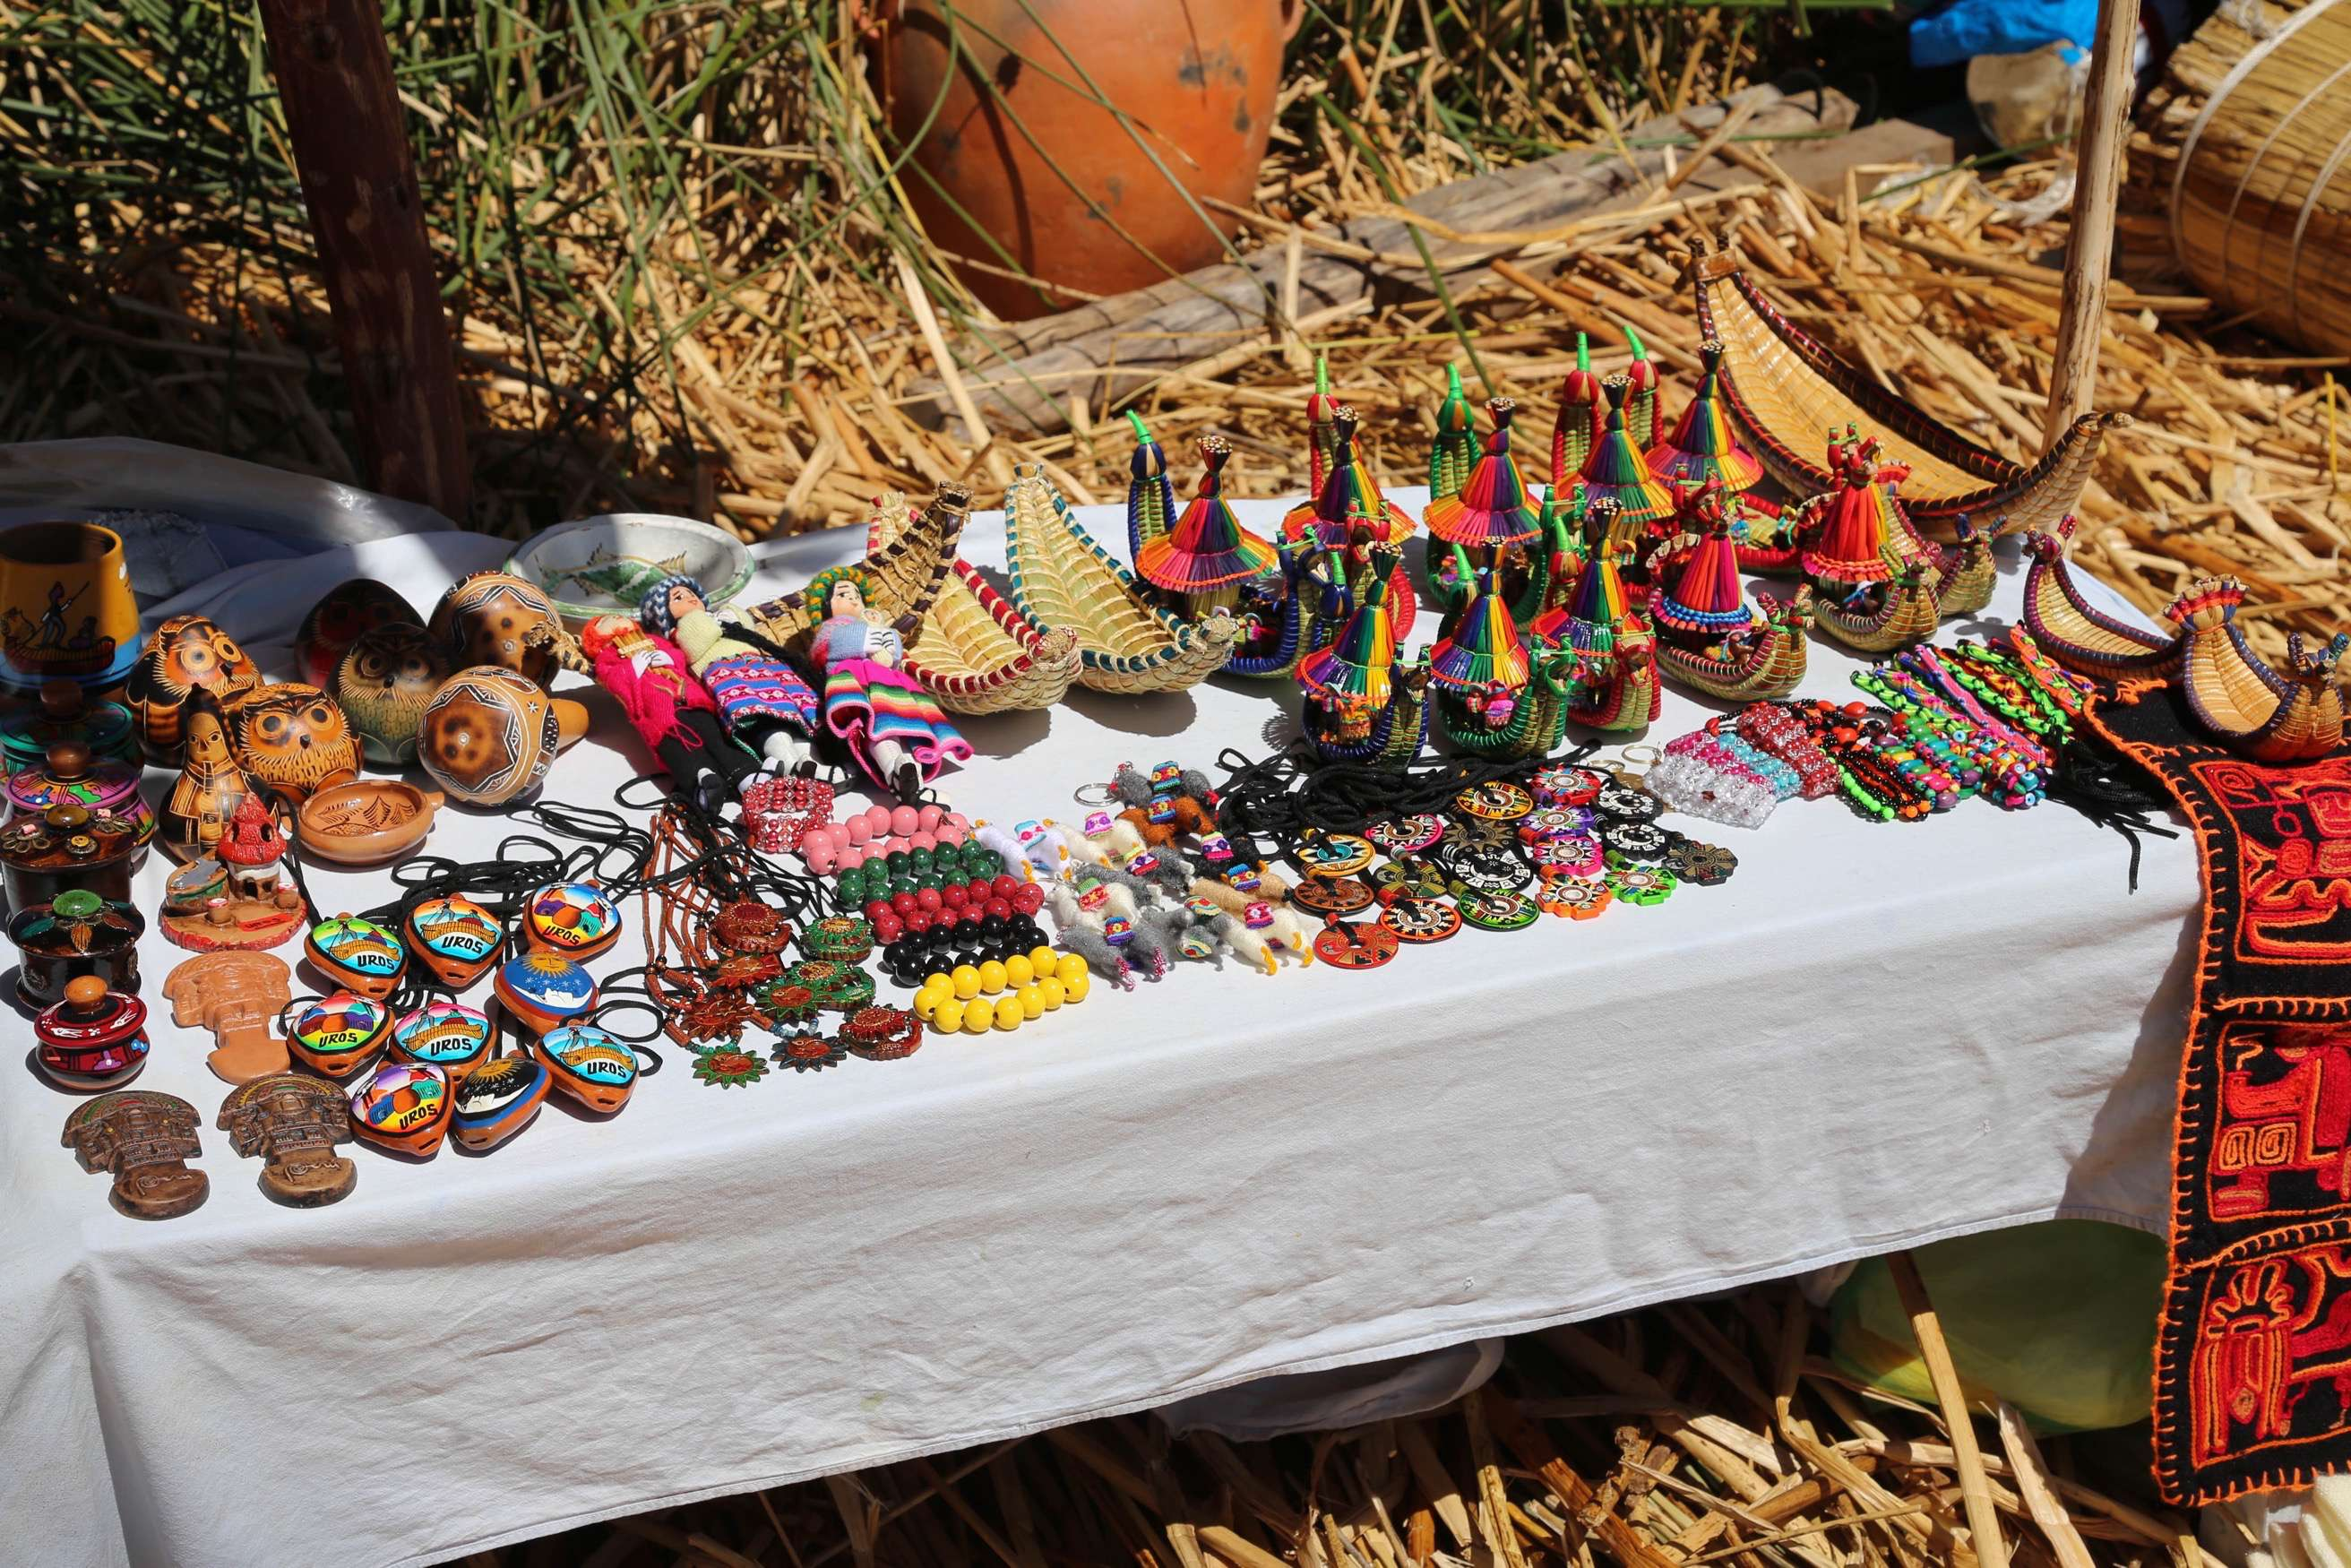 Handicrafts and trinkets are a steady source of revenue that tourists happily snap up.